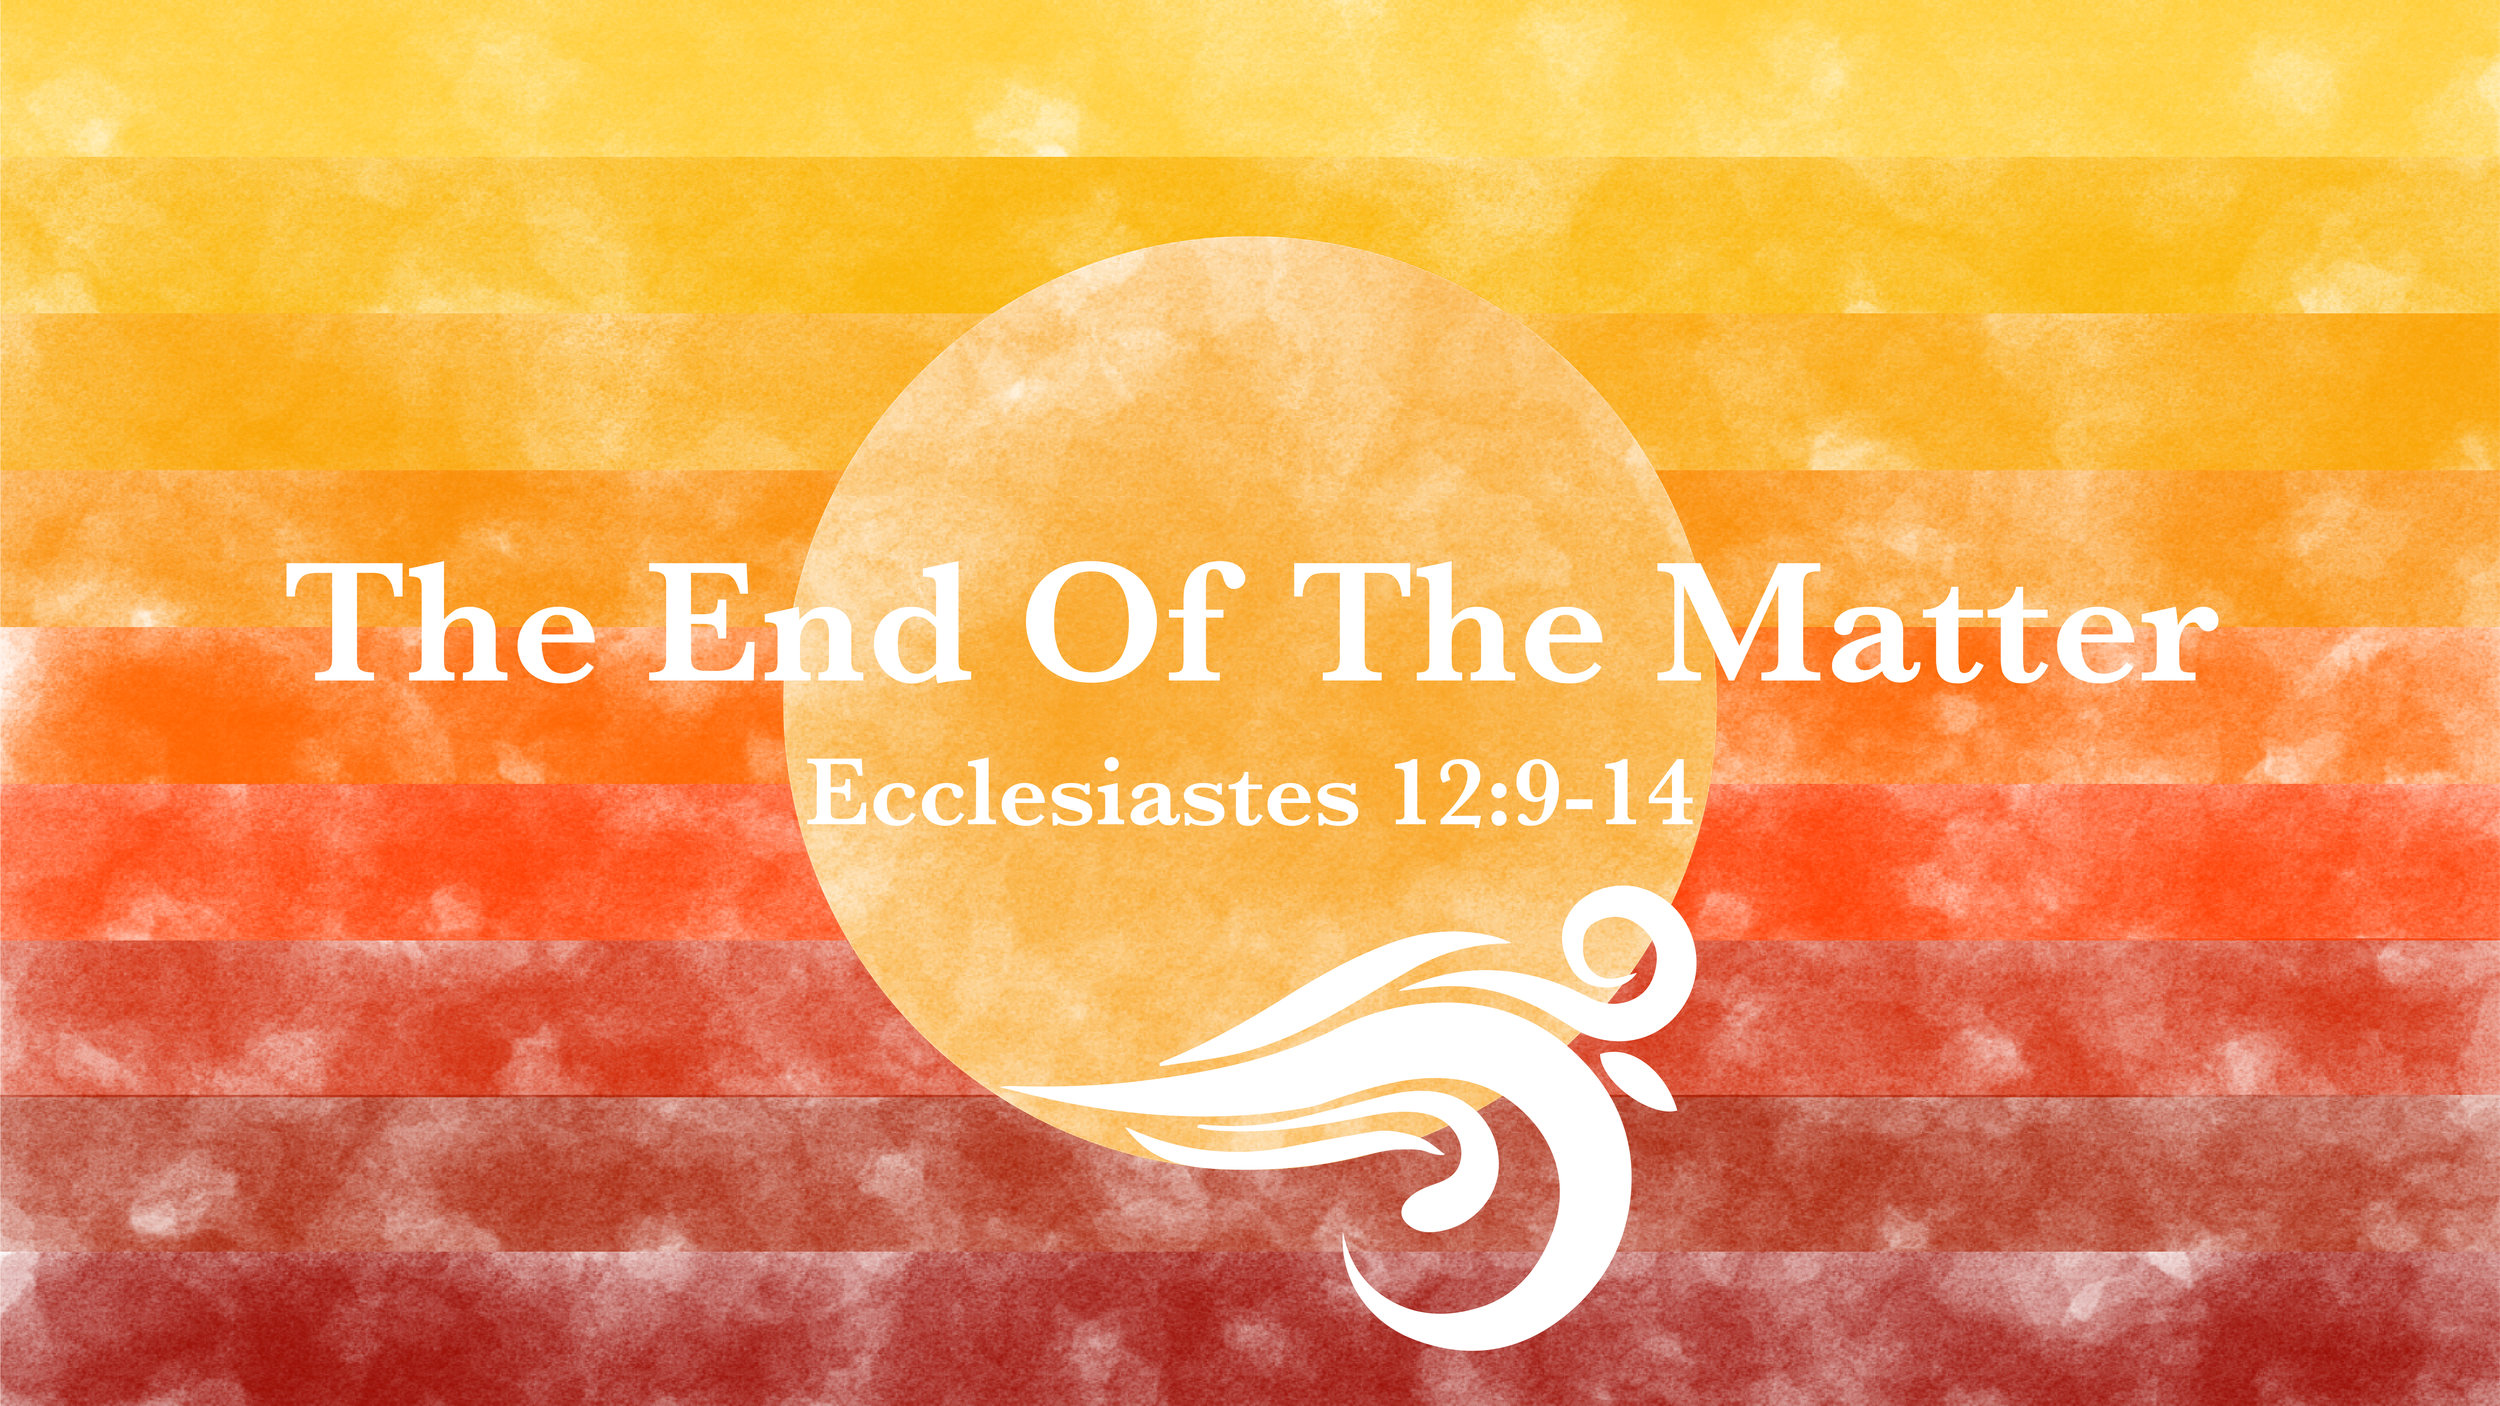 The End Of The Matter-06.jpg